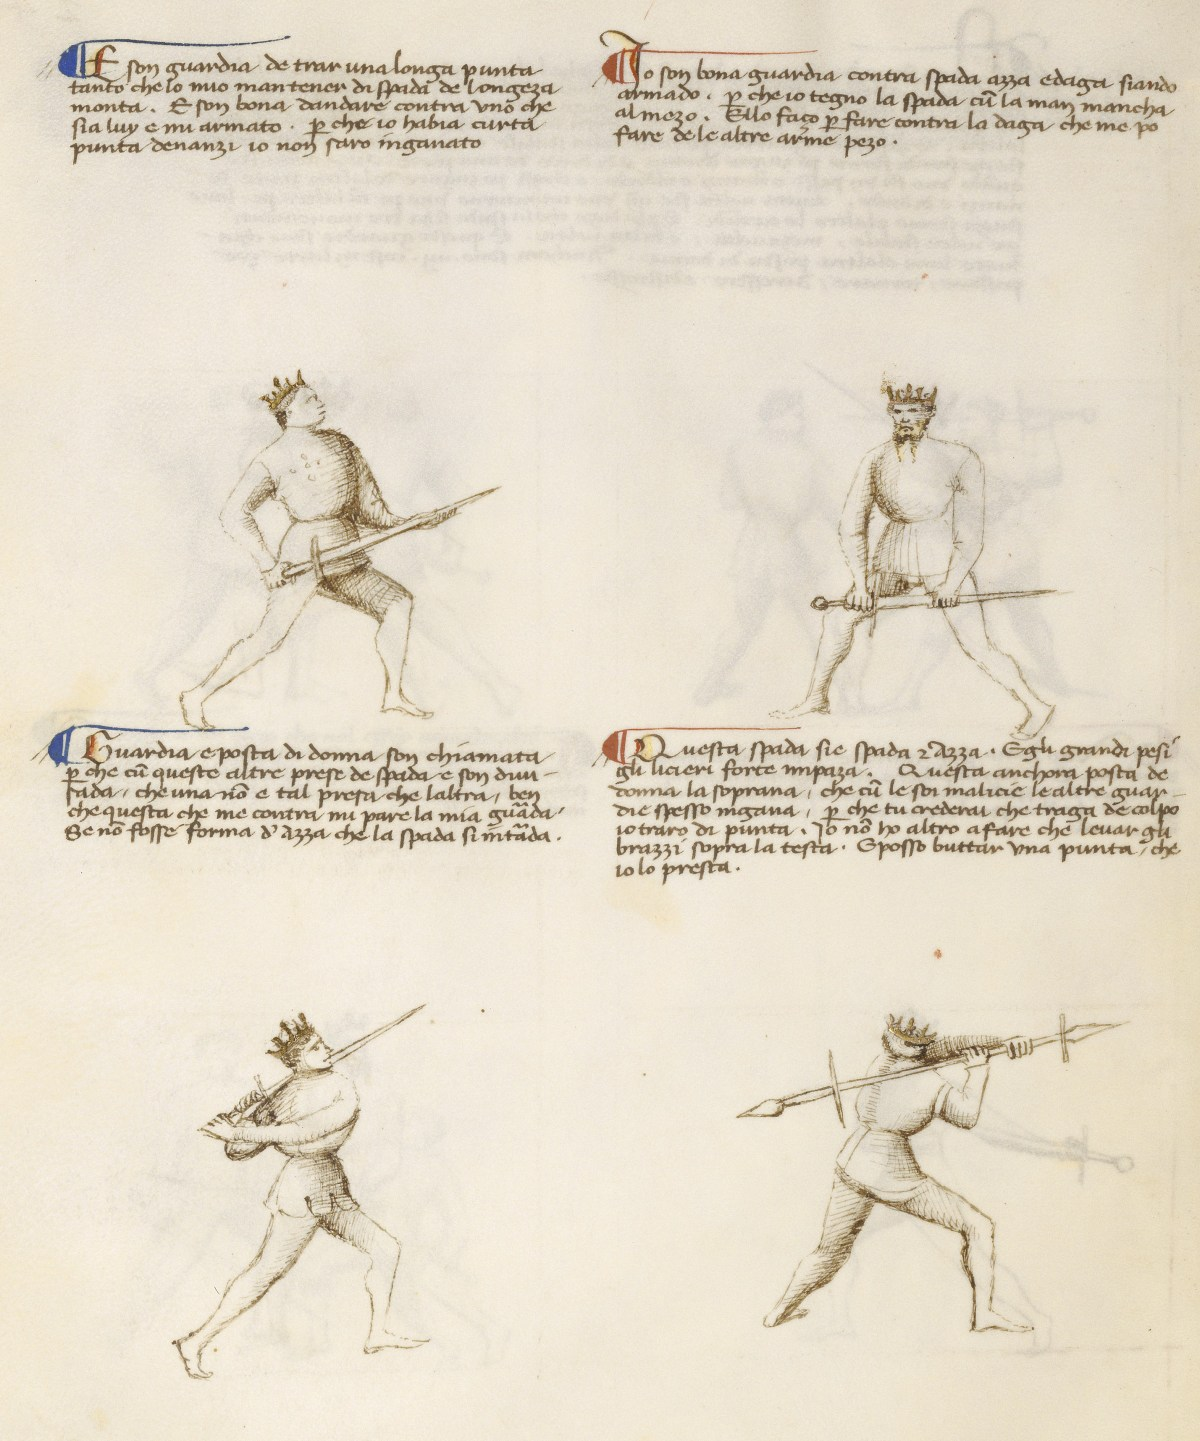 Four of the six Masters of Swordsmanship, detailing the use of the sword by 1) making an extended thrust, 2) gripping the blade to fight in armour, 3) wielding in two-hands by the hilt, 4) gripping the blade to wield the sword like an axe. )Getty Ms. 22v